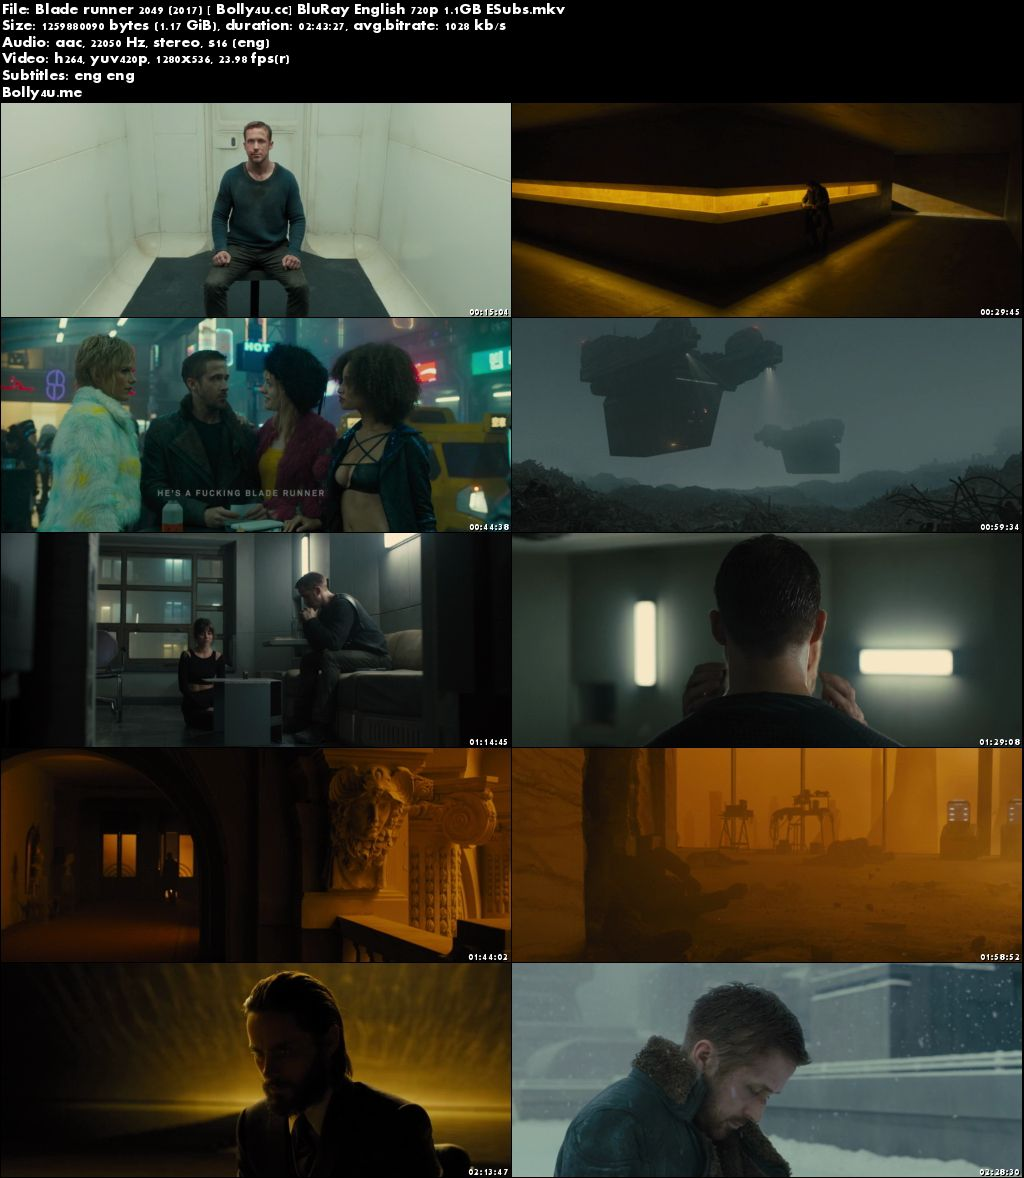 Blade runner 2049 (2017) BluRay 450MB Full English Movie Download 480p